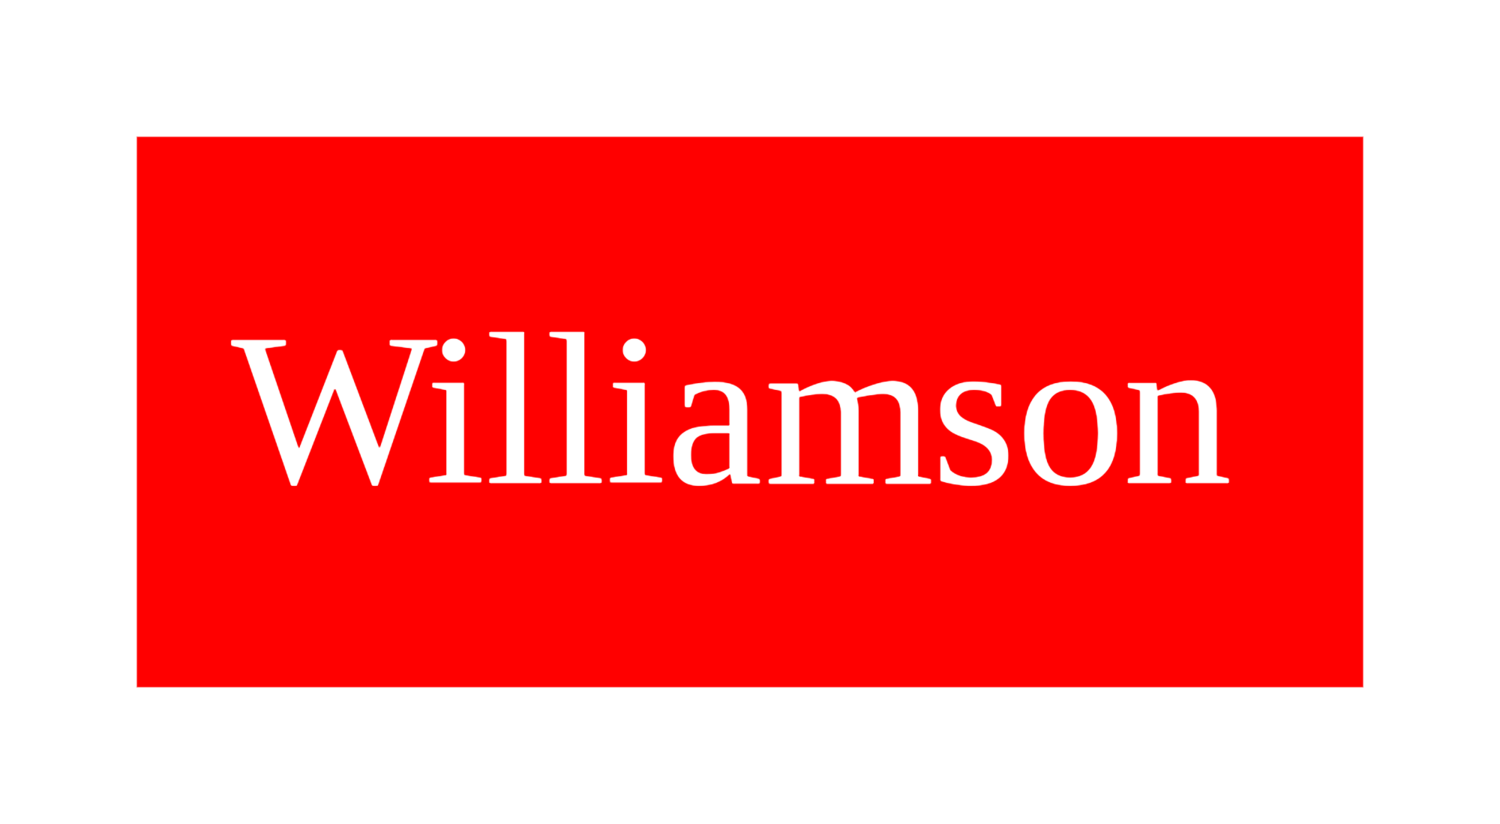 The Williamson Law Firm, LLC | Lawyers & Attorneys Trenton, NJ | Personal Injury, Civil Litigation, Real Estate & DUI's